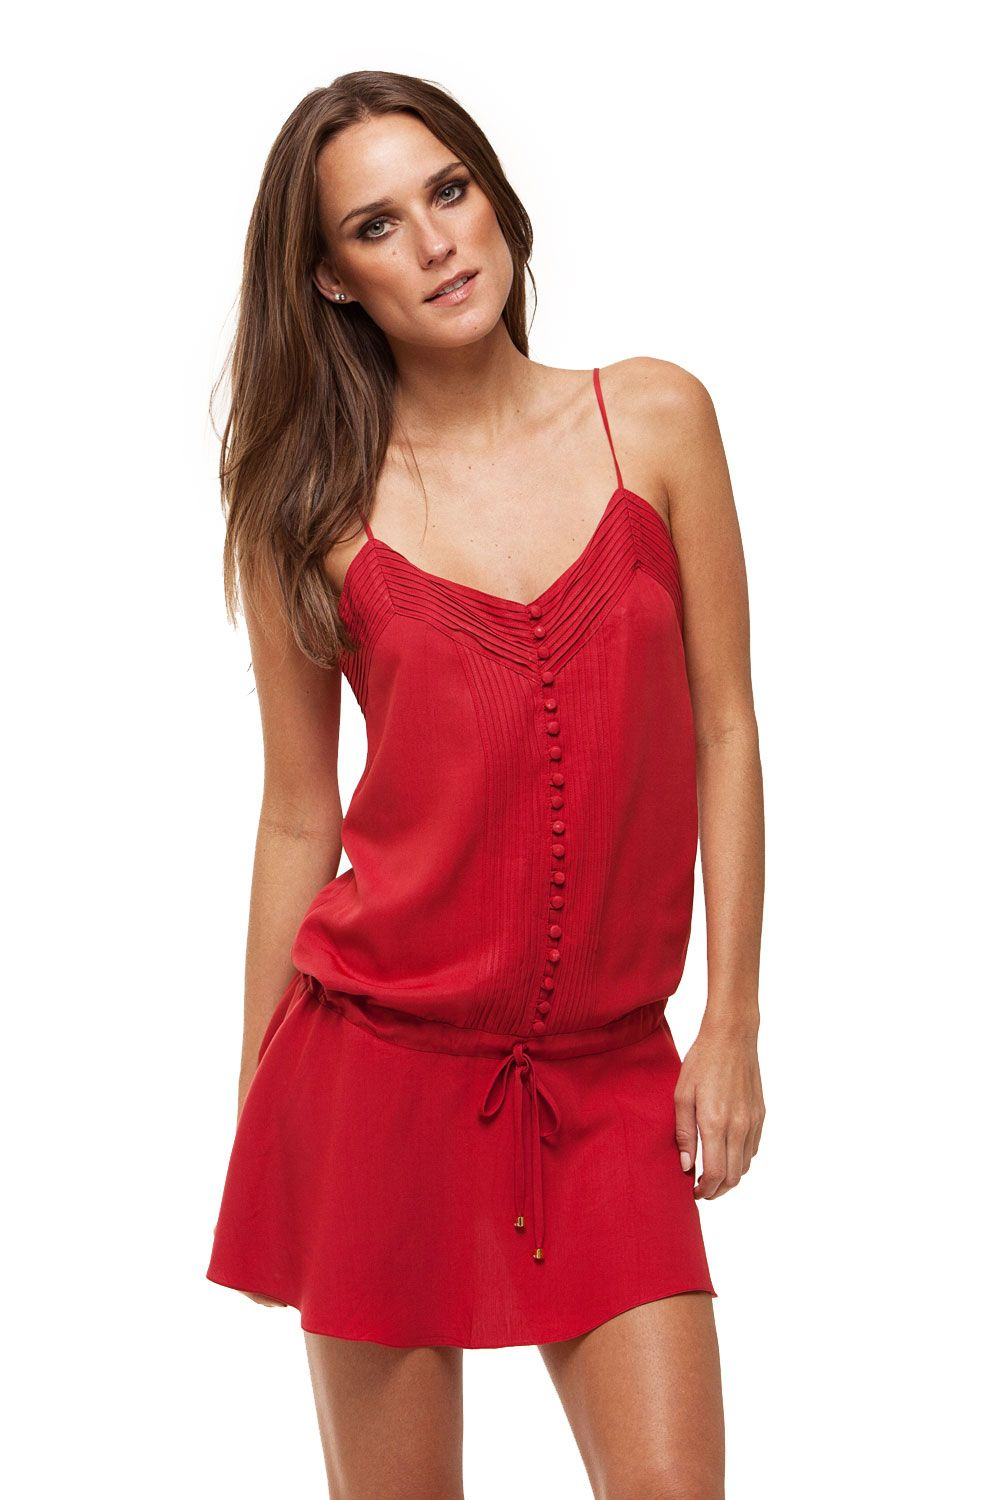 Solid red joy short dress vixphermanny find true love with